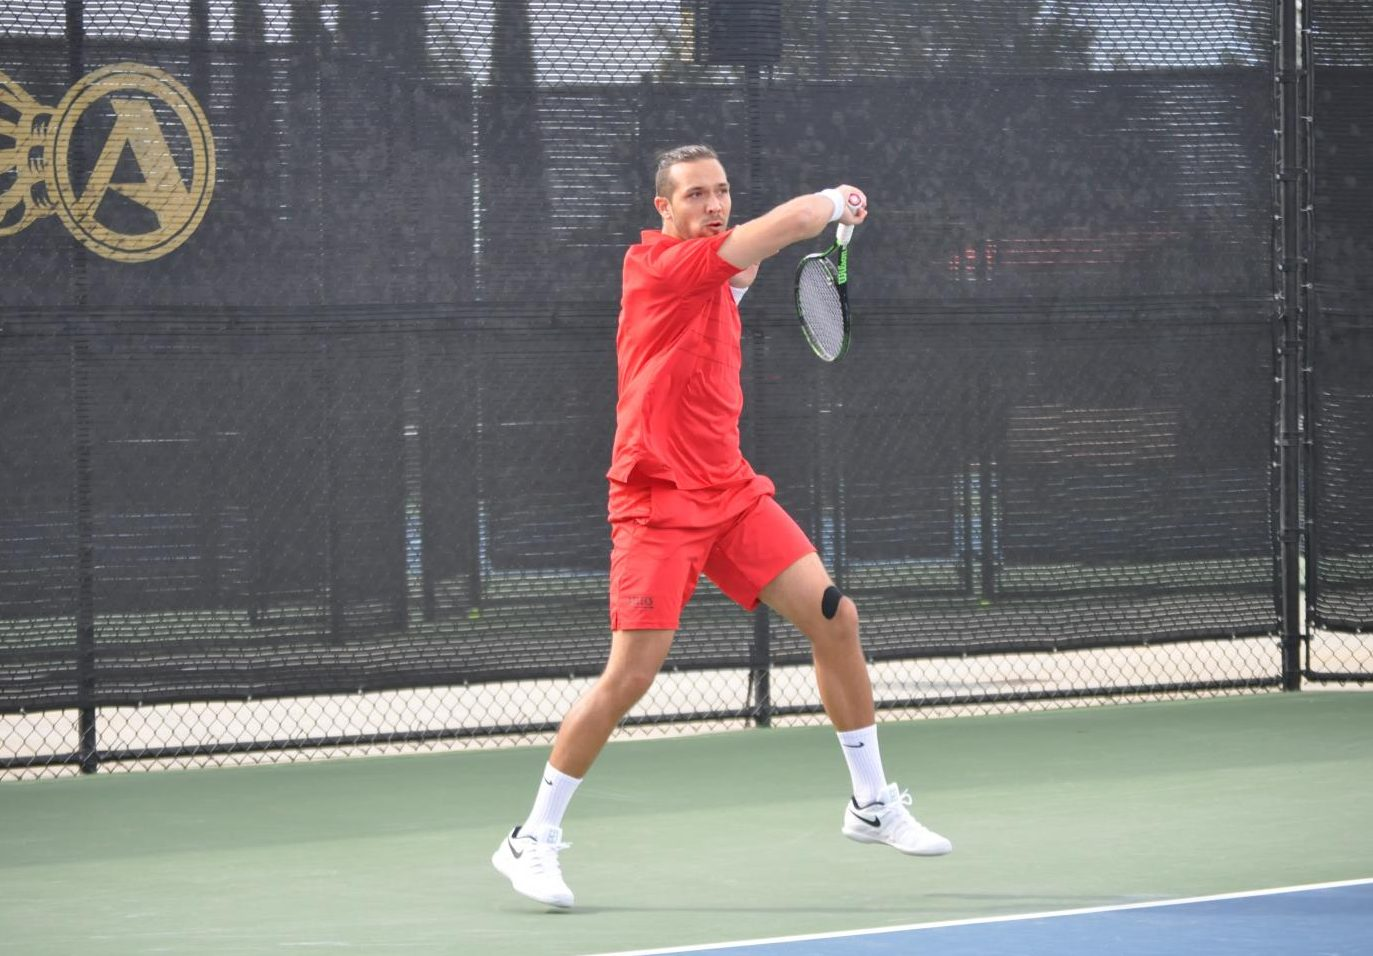 Junior Fabian Roensdorf swings his racket during the Aztecs' 4-3 victory over San Francisco on Feb. 17 at  the Aztec Tennis Center.